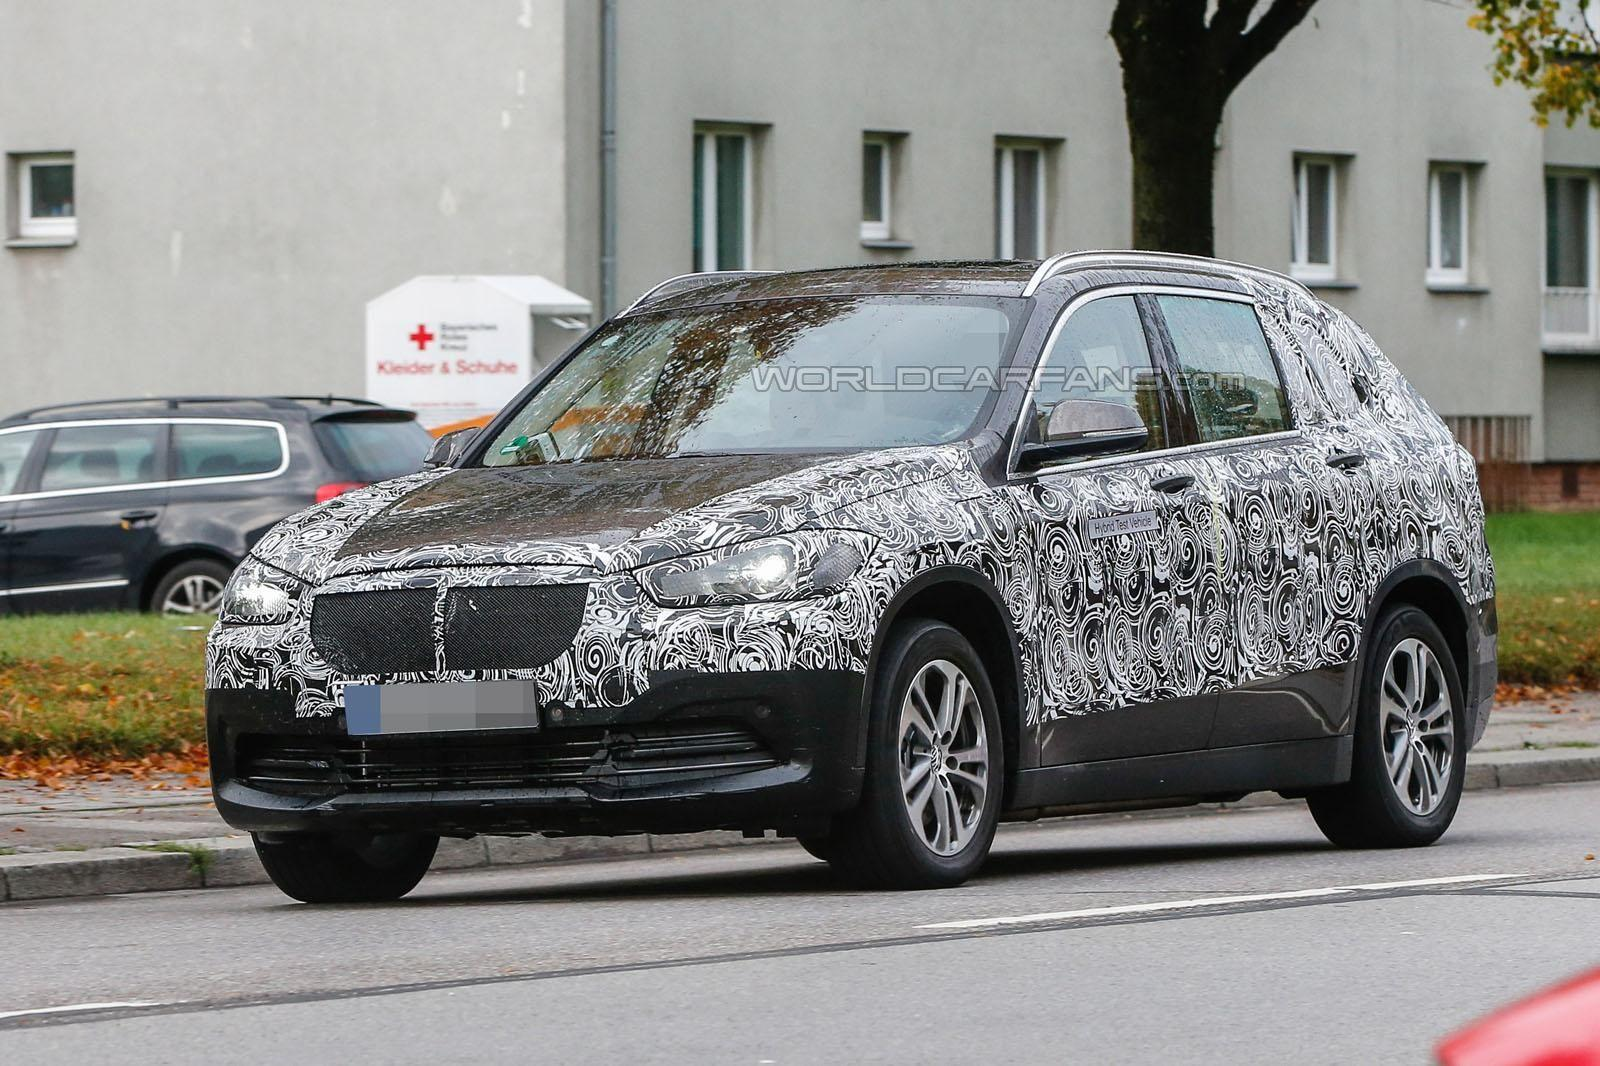 BMW X1 seven-seater seen testing